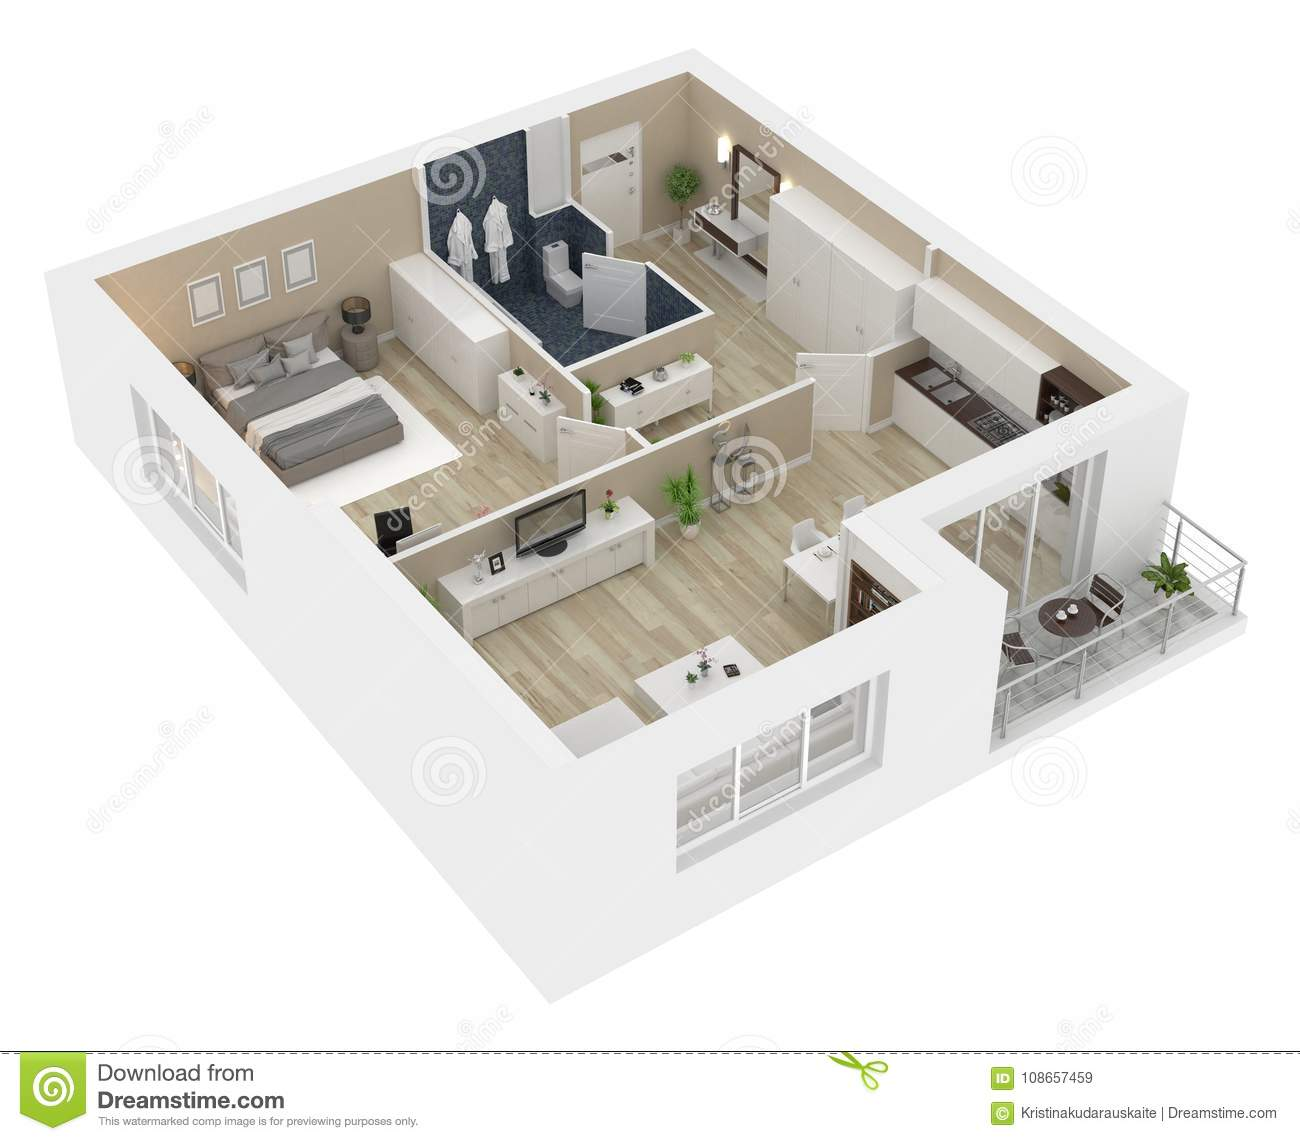 Floor plan of a house view 3d illustration stock for Planner casa 3d